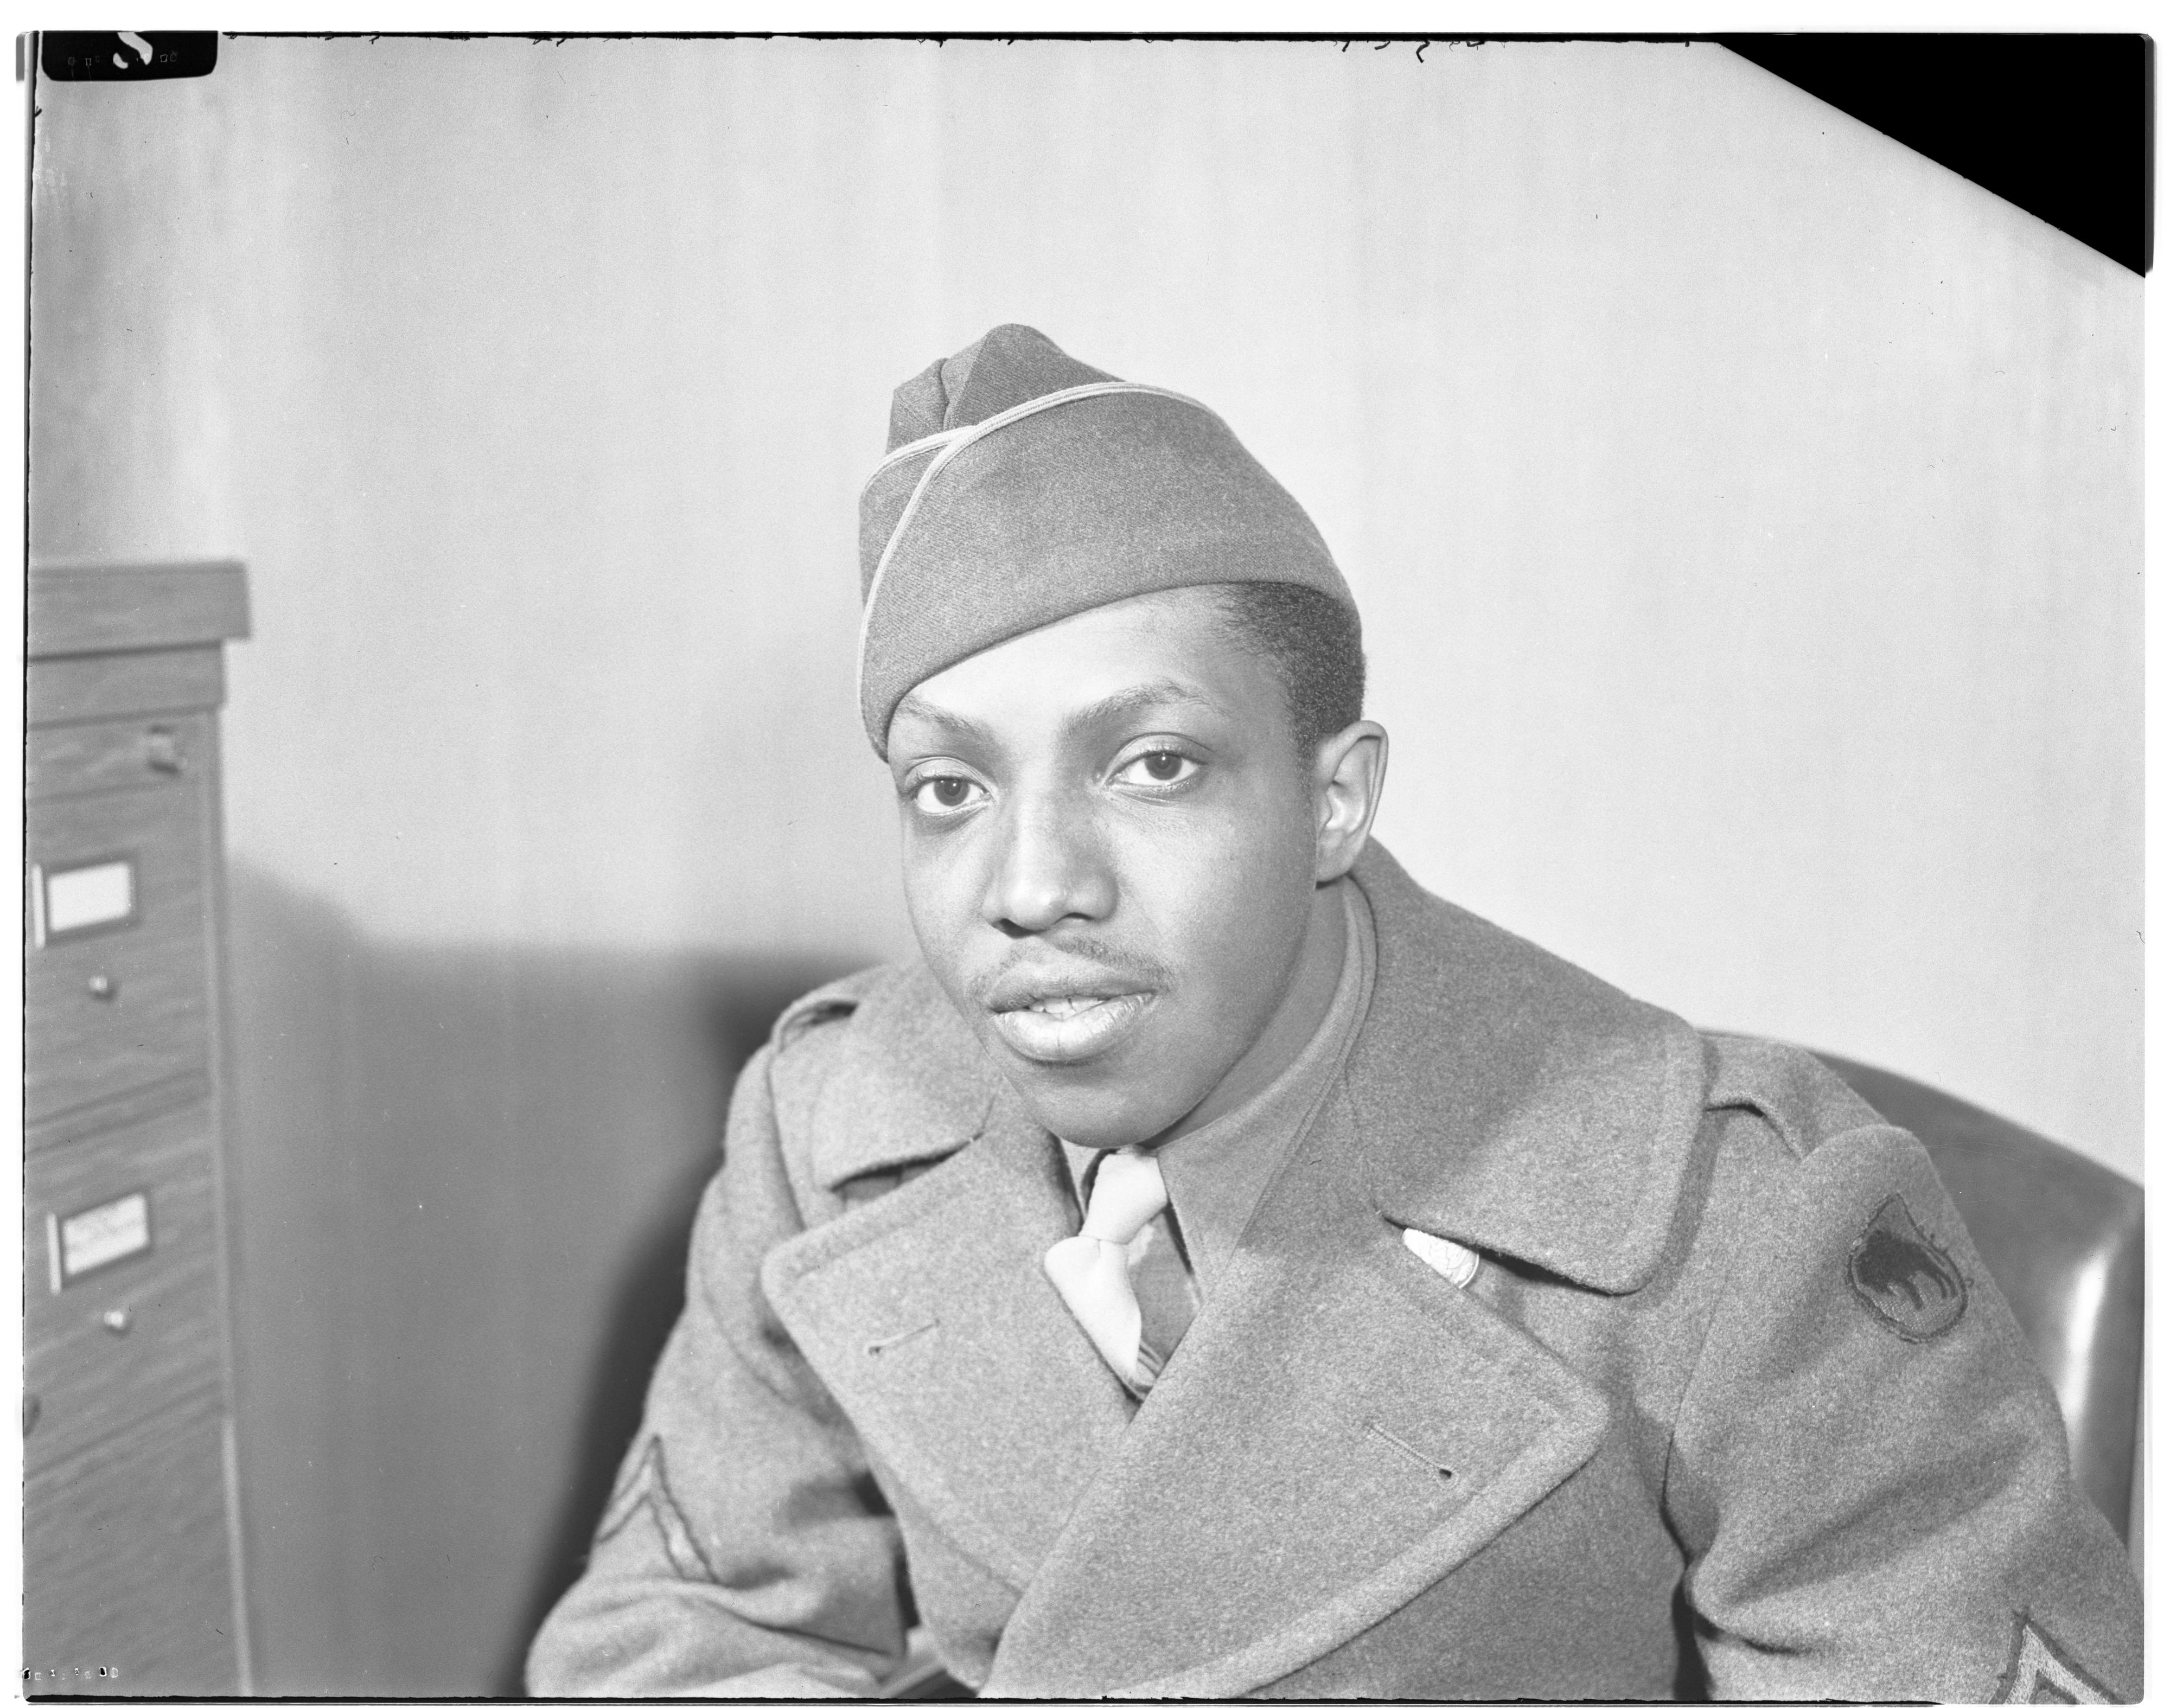 Private George R. Cromwell, US Army, March 1943 image